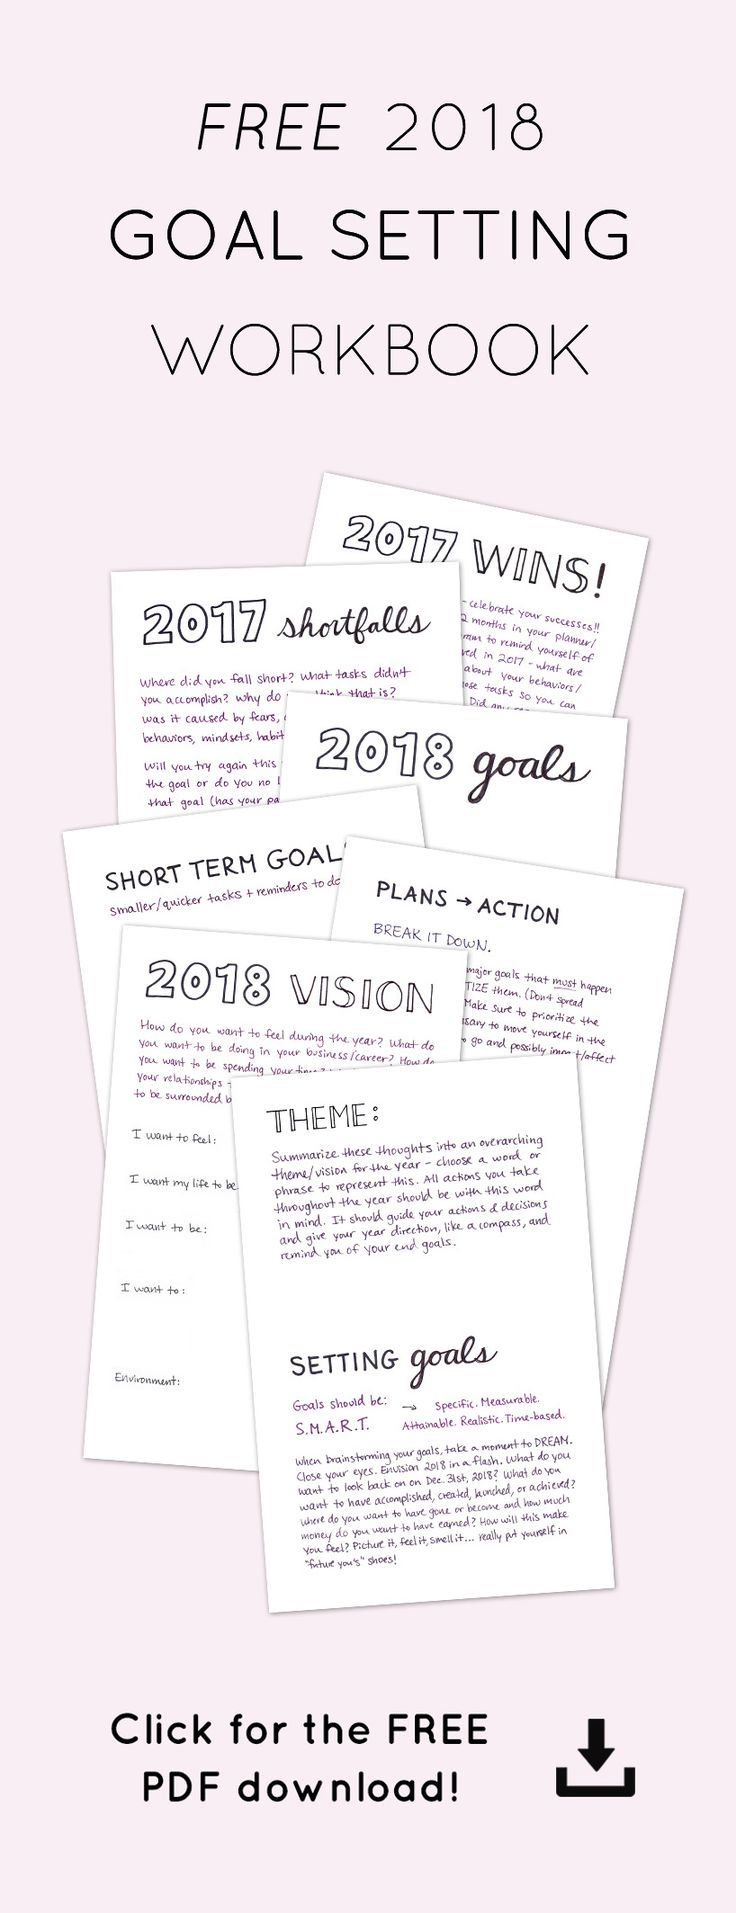 2019 Goal Setting Workbook Tips For Small Business